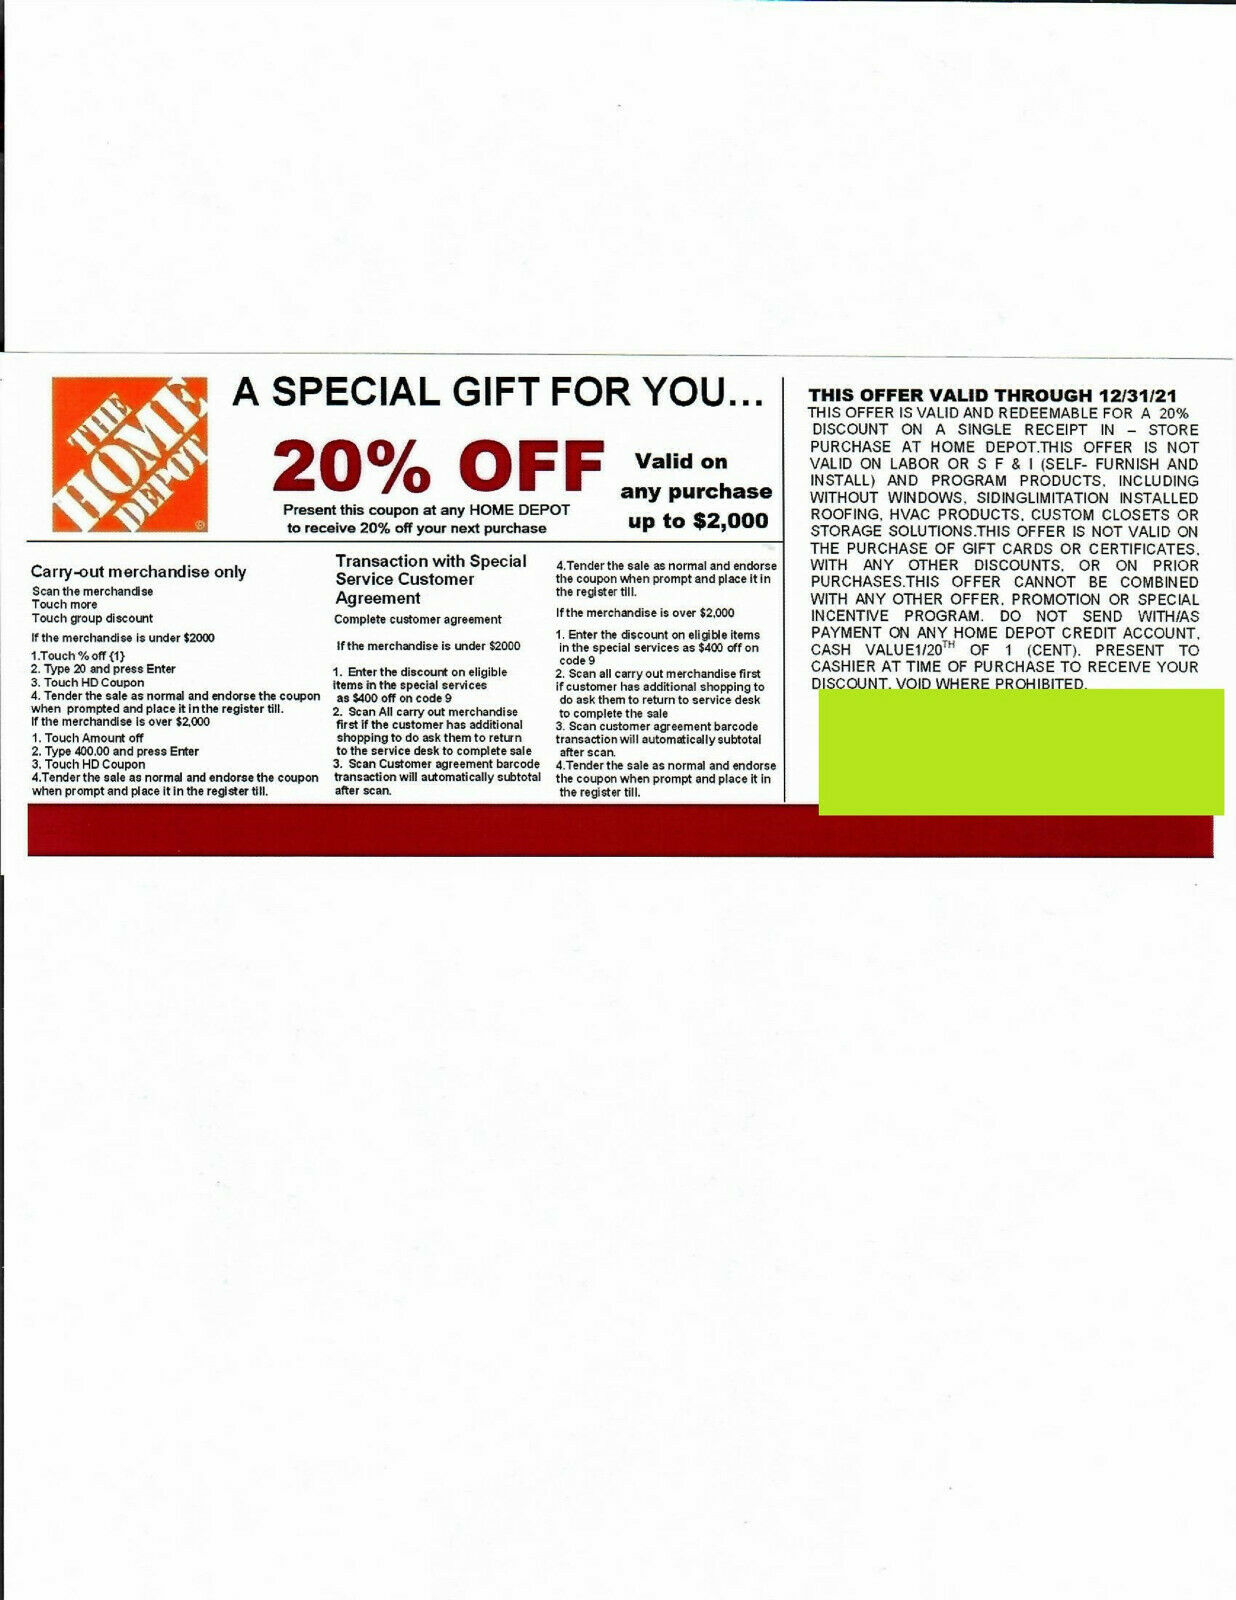 --2-- 20 OFF HOME DEPOT Competitors Coupon ---- Expires----- 12/31/21  - $10.00